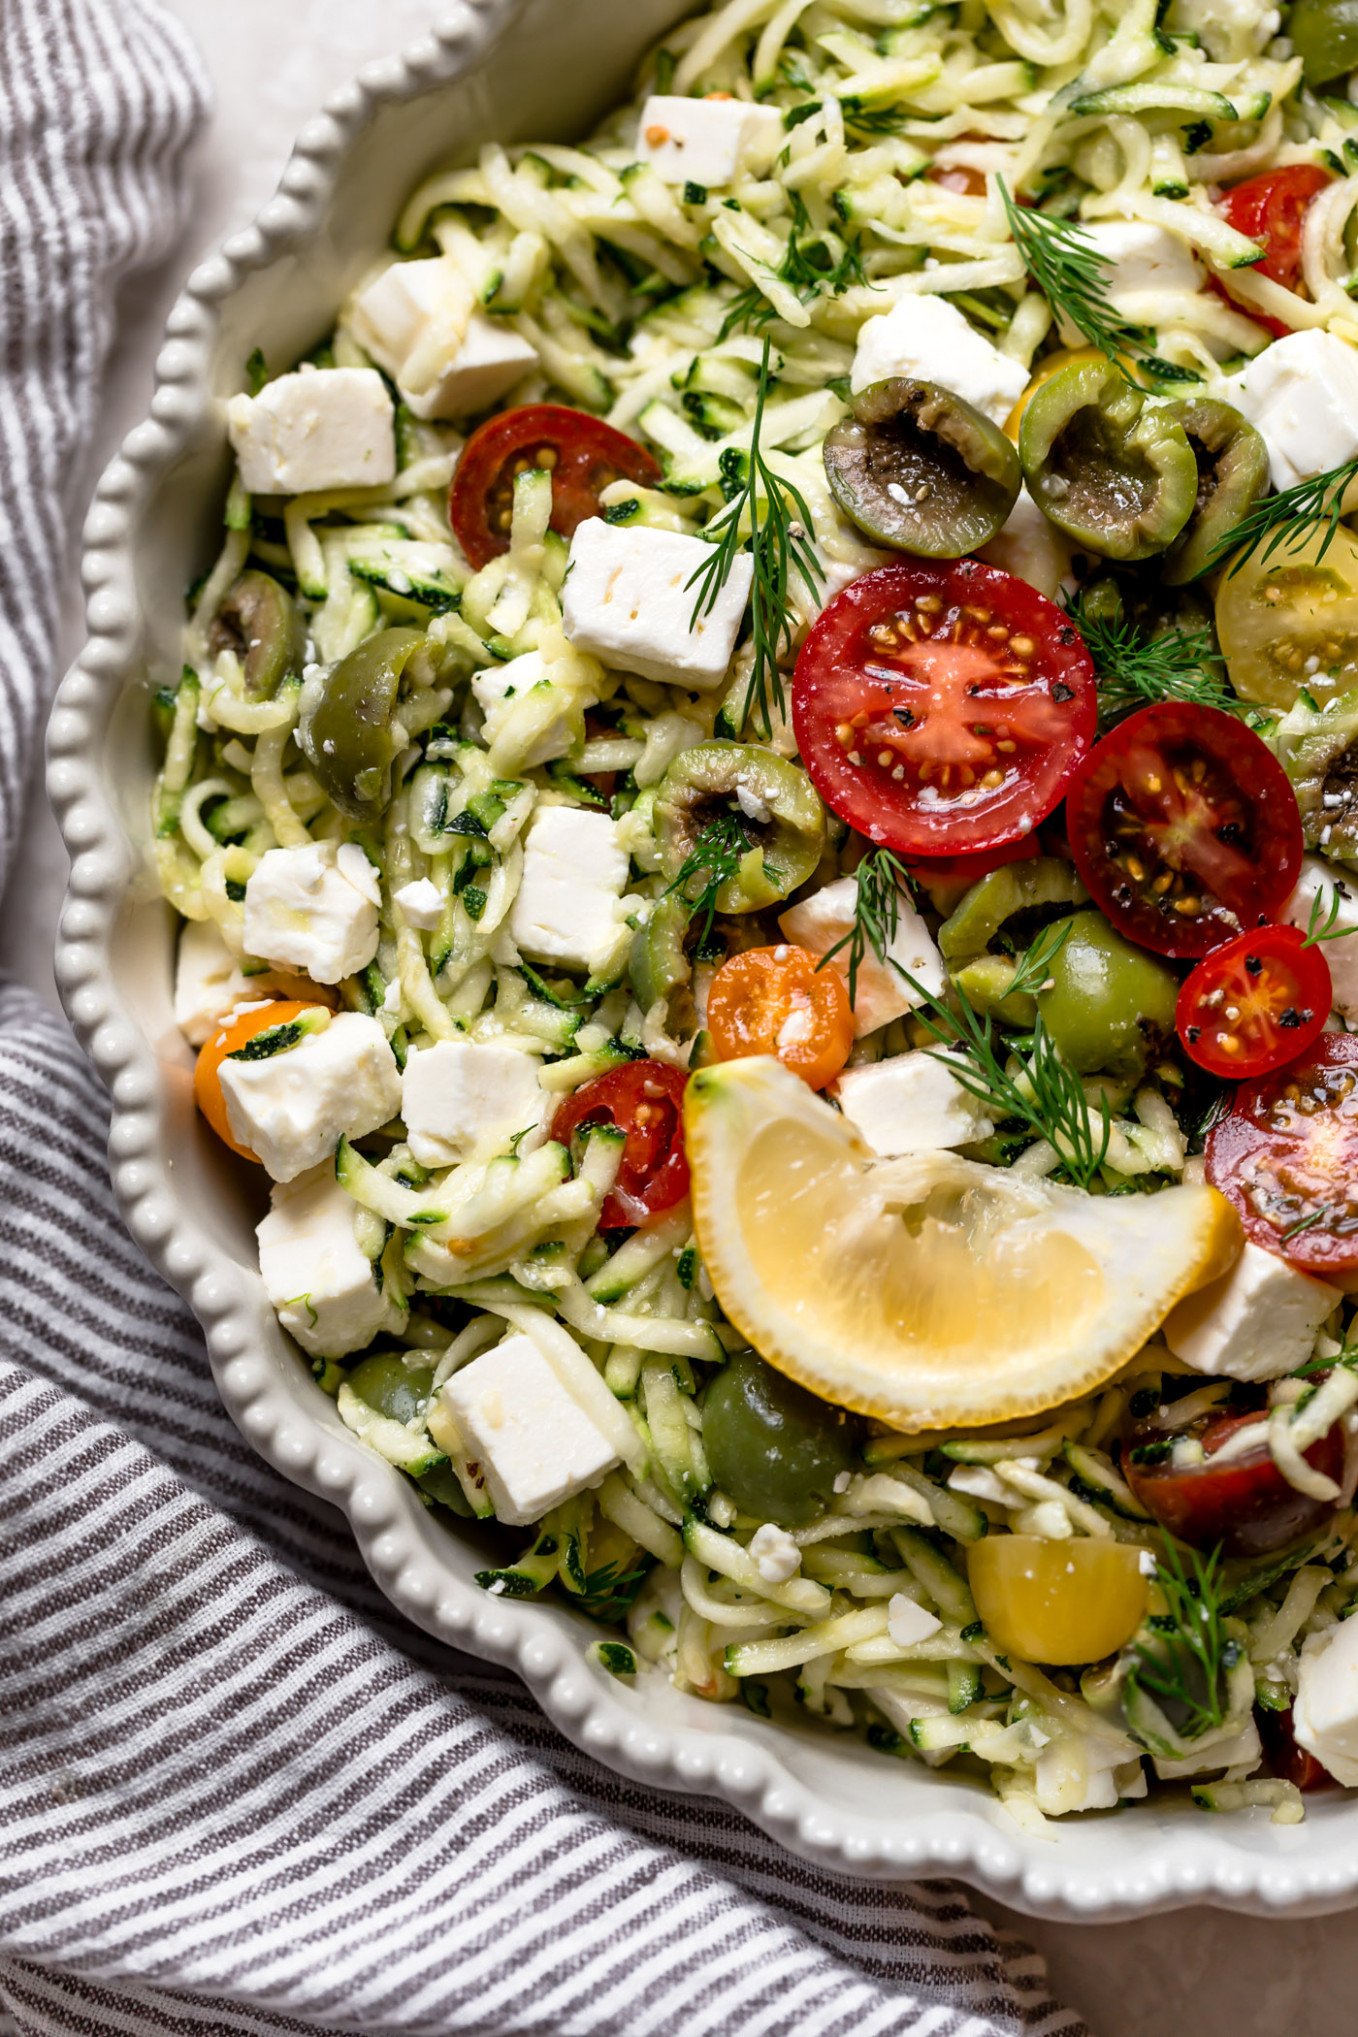 Raw Grated Zucchini Salad Recipe With Feta (13 Ingredients!) - Dinner Recipes Zucchini